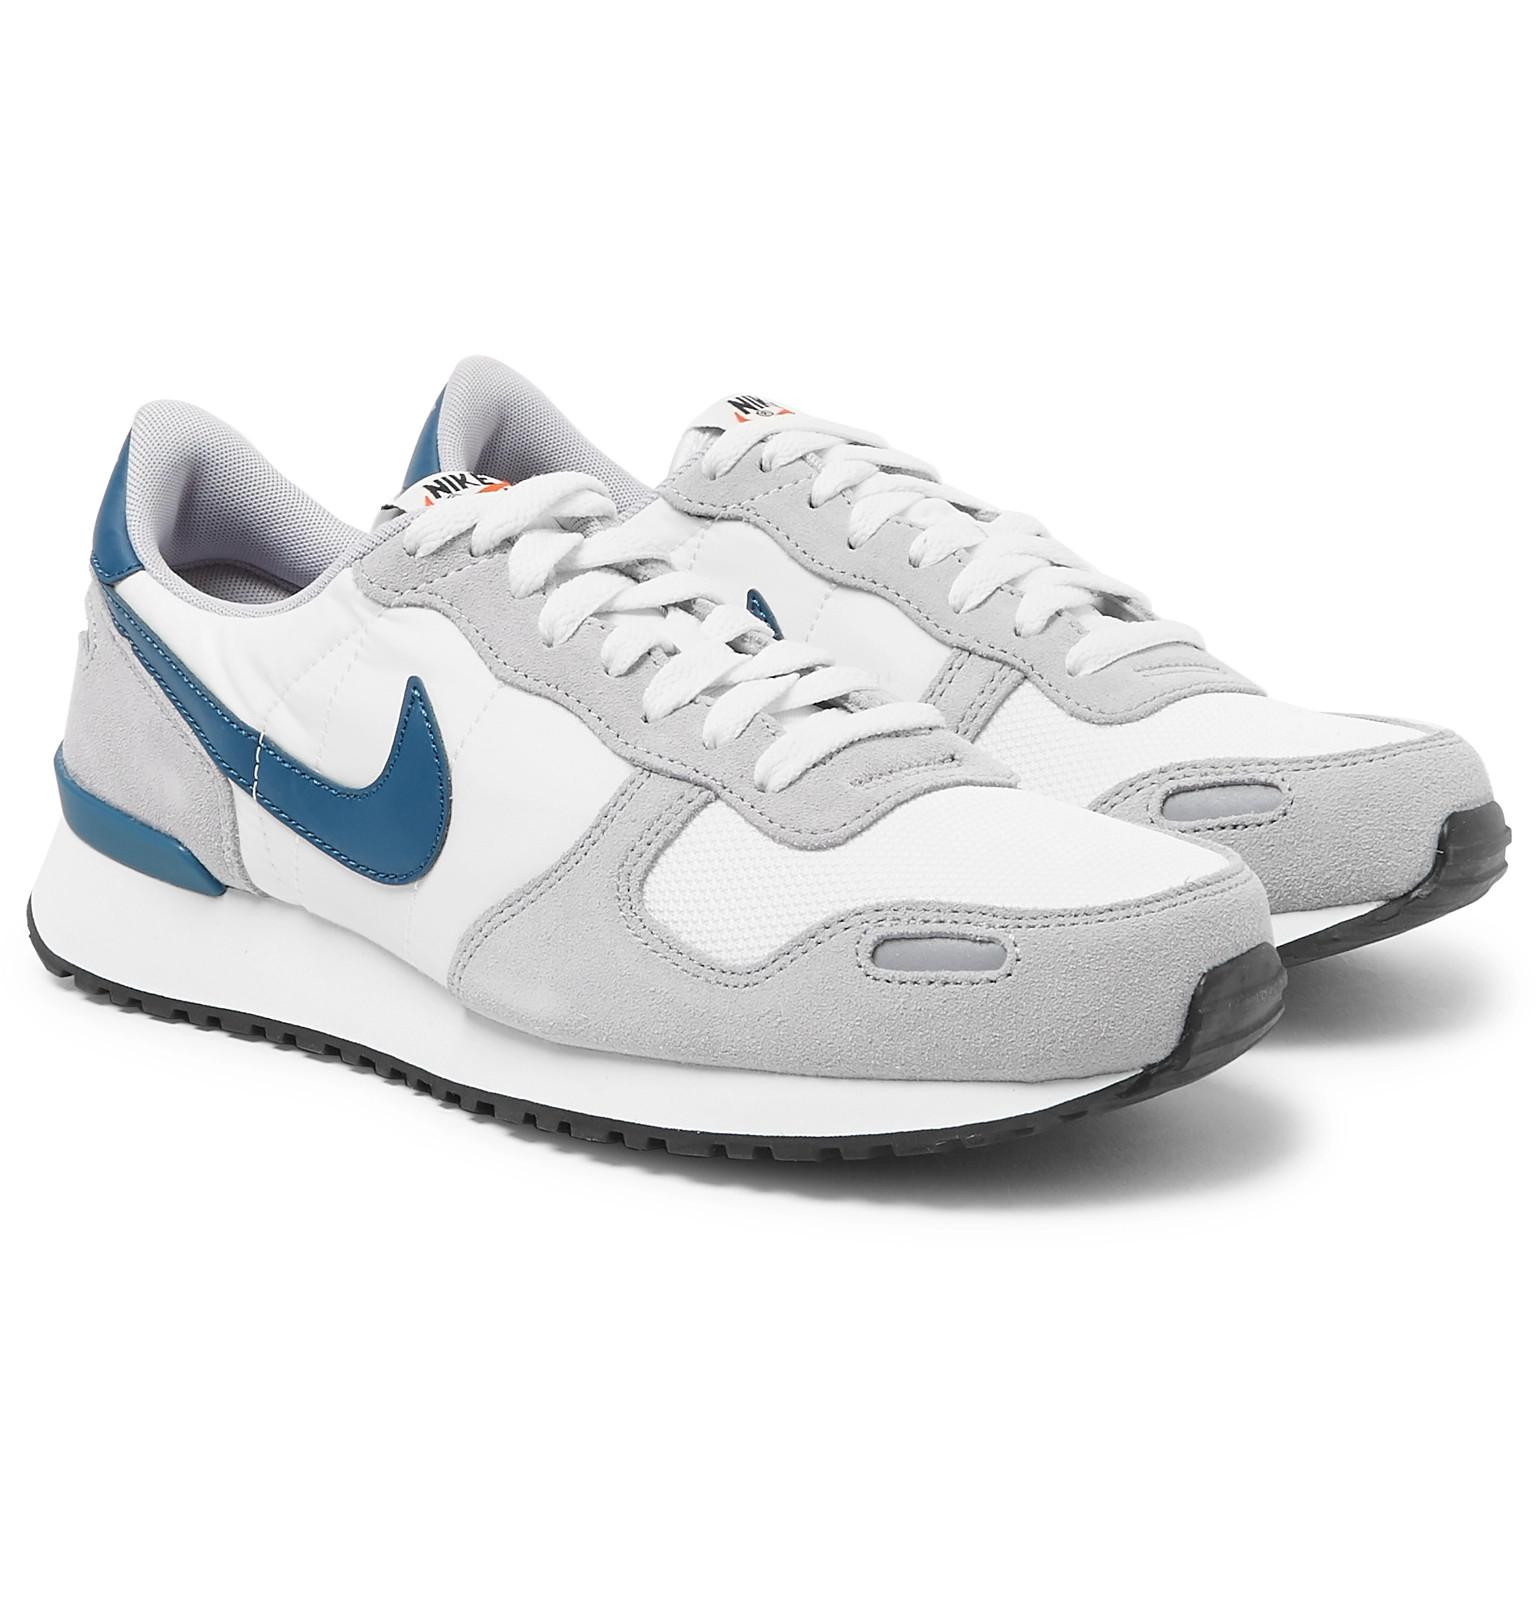 fe5137de20 Nike Air Vortex Leather-trimmed Suede, Nylon And Mesh Sneakers in ...